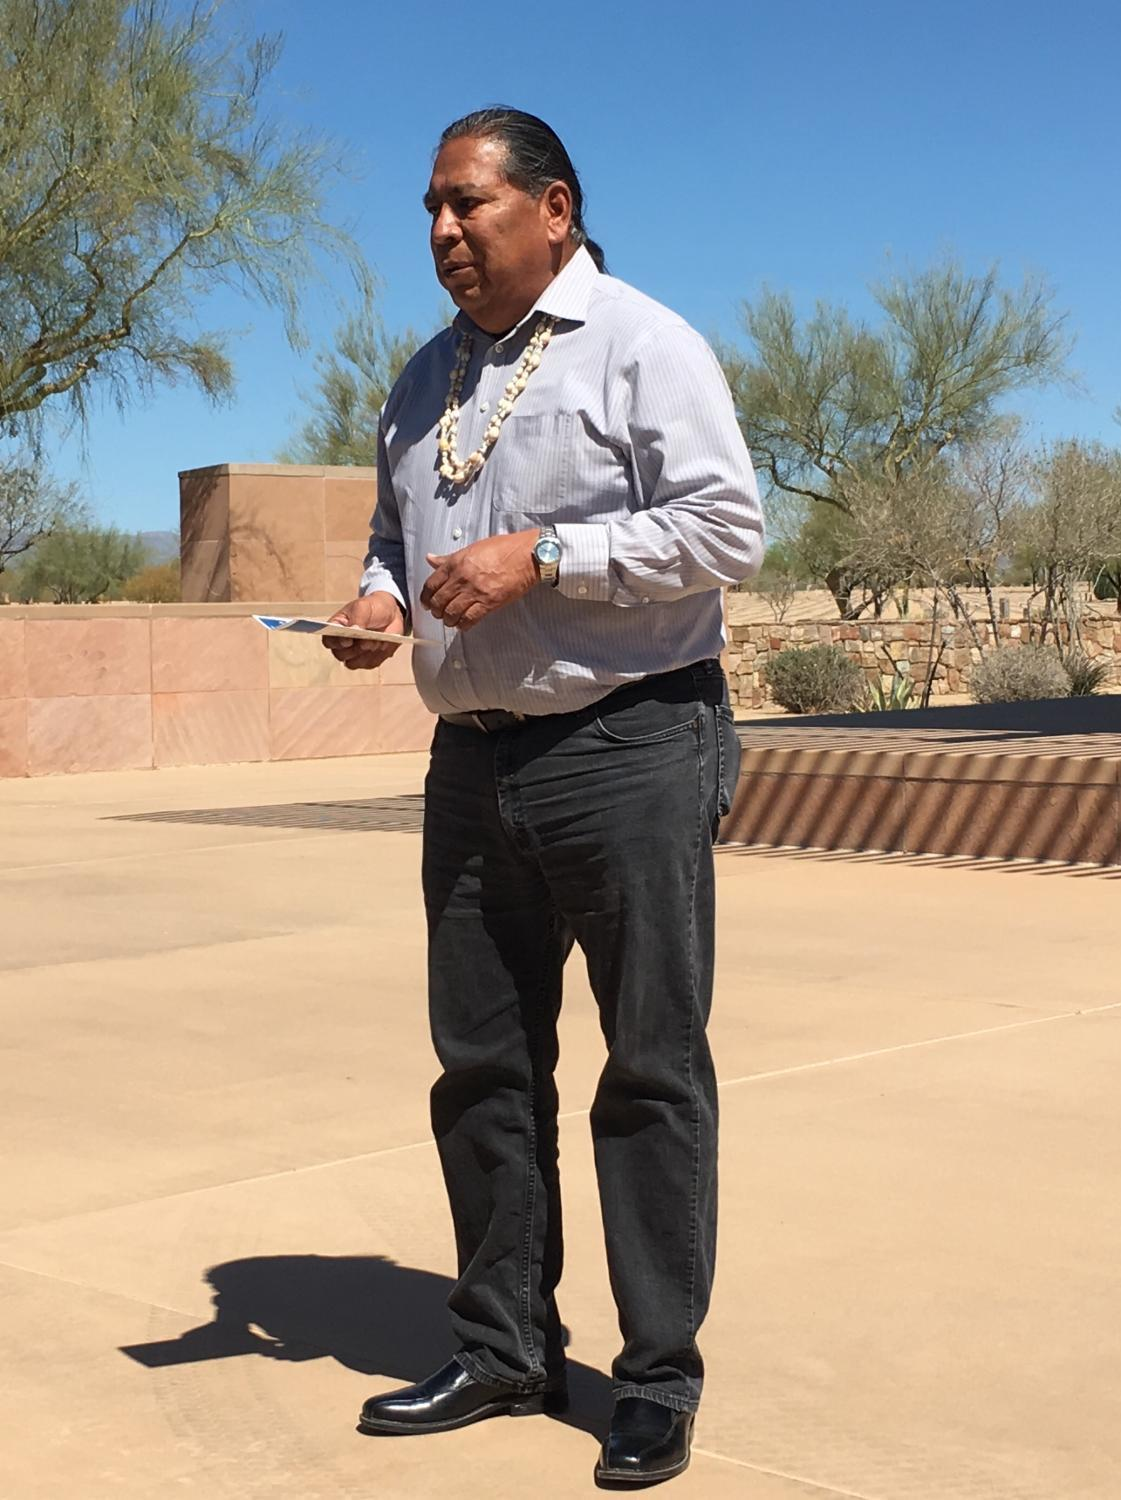 Lt. Gov. Robert Stone of the Gila River Indian Community addresses the family in the O'otham language.